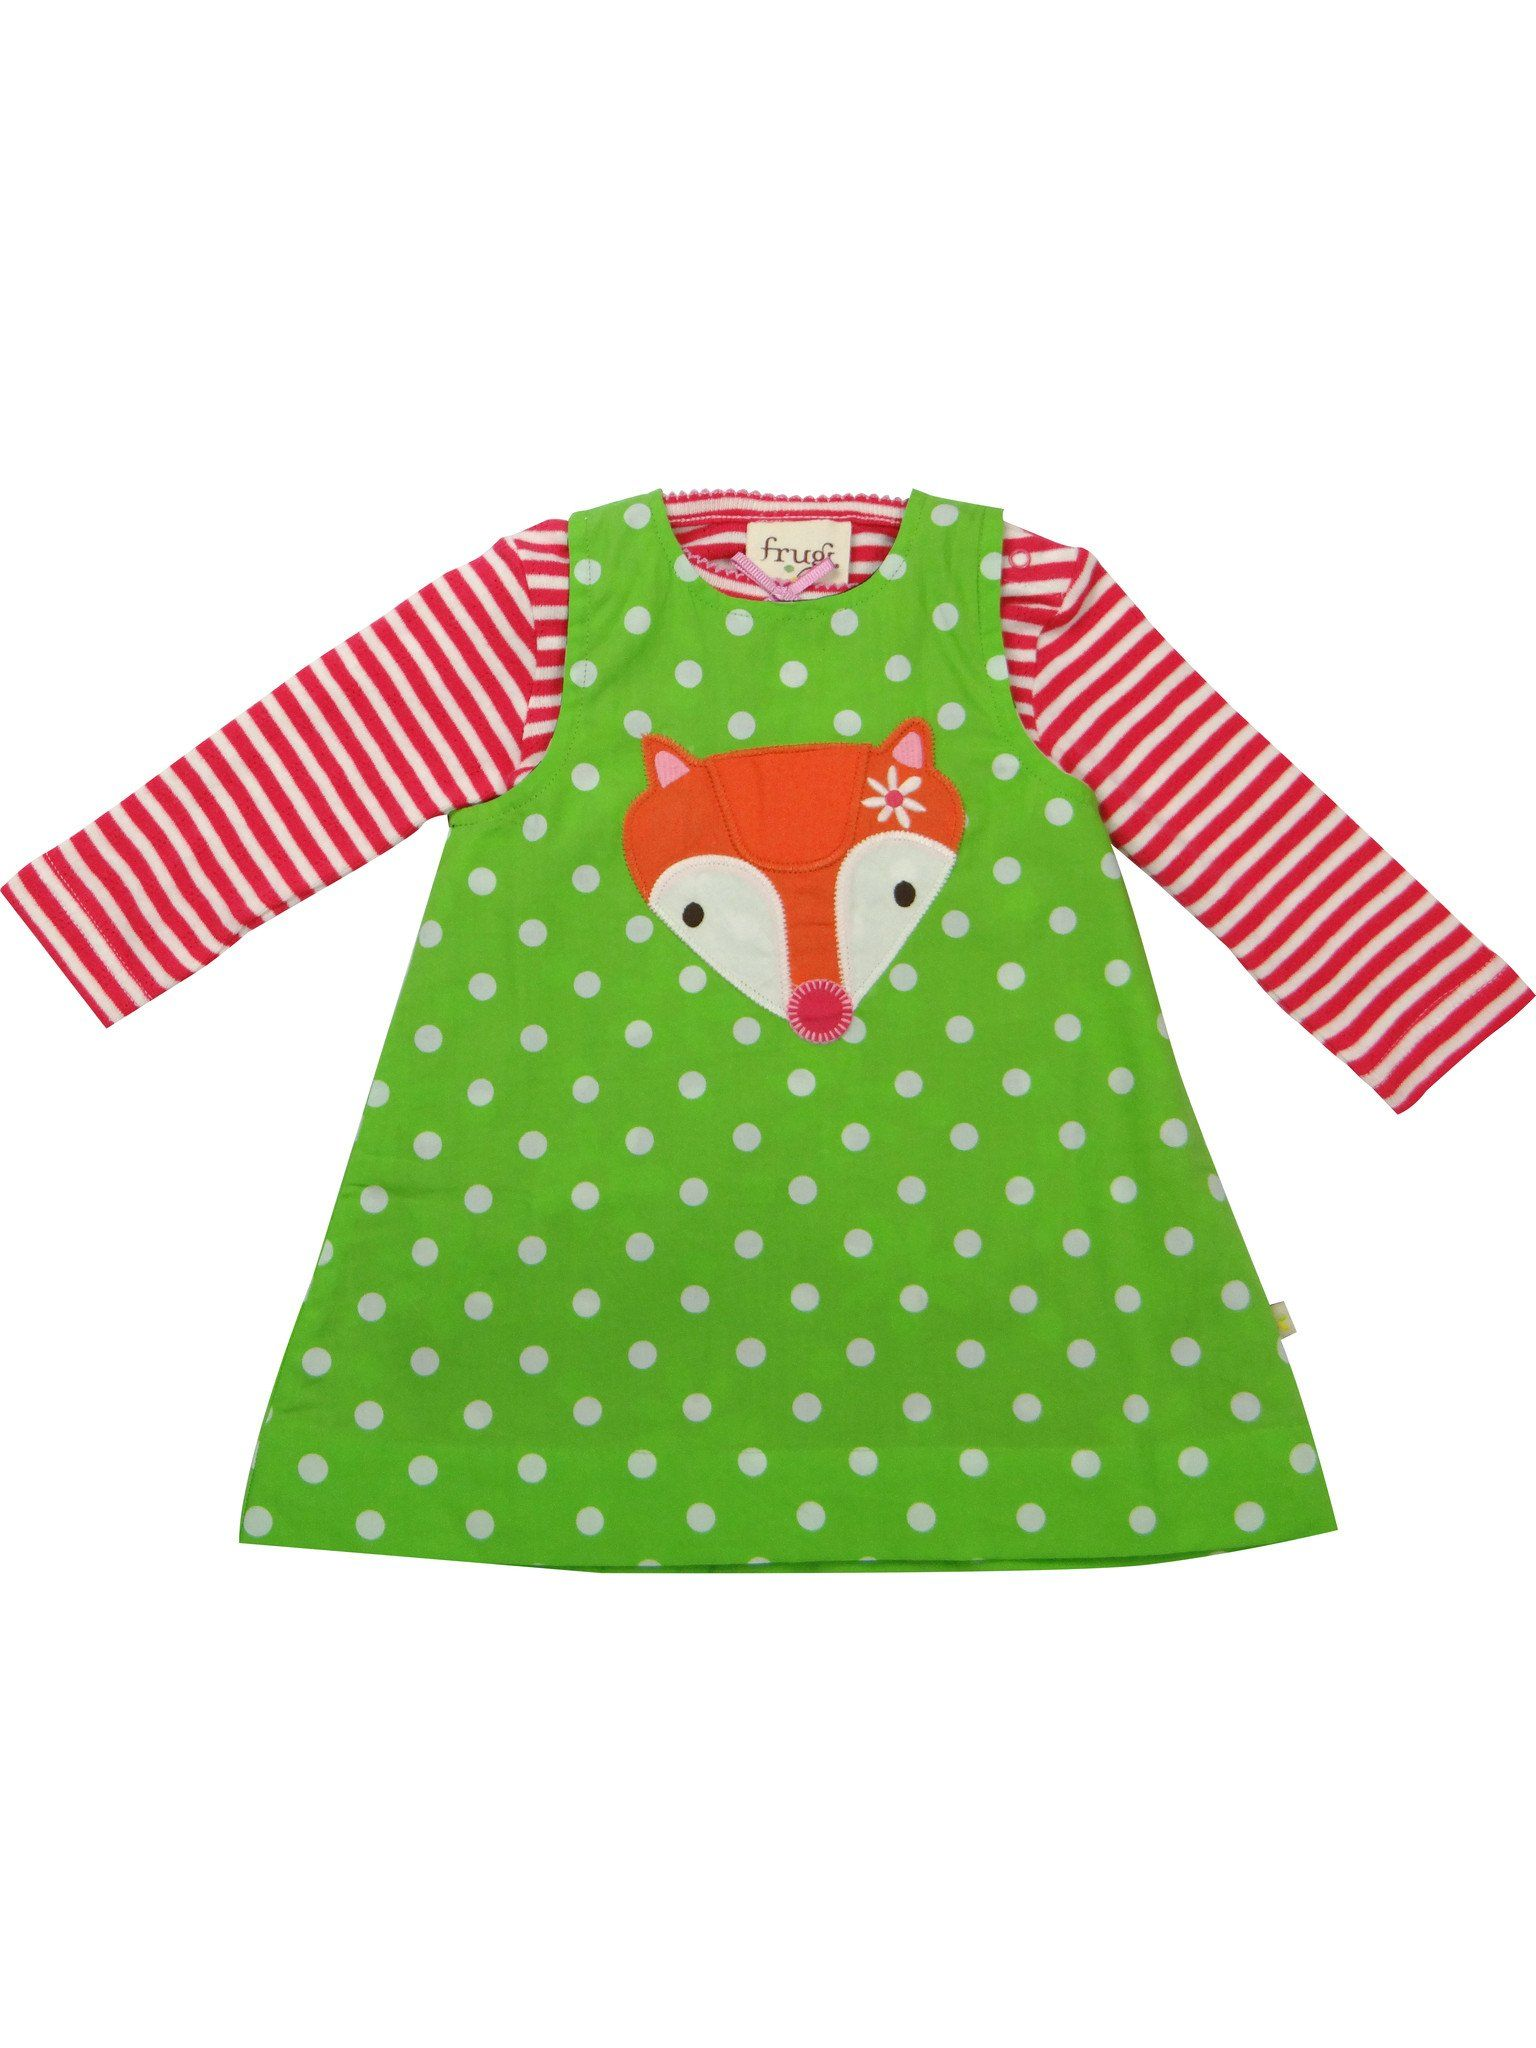 ... Baby Gift Works. Stripy Fox (2 dresses in 1) - Frugi Organic Cotton -  Reversible Dress and efaebb60c973